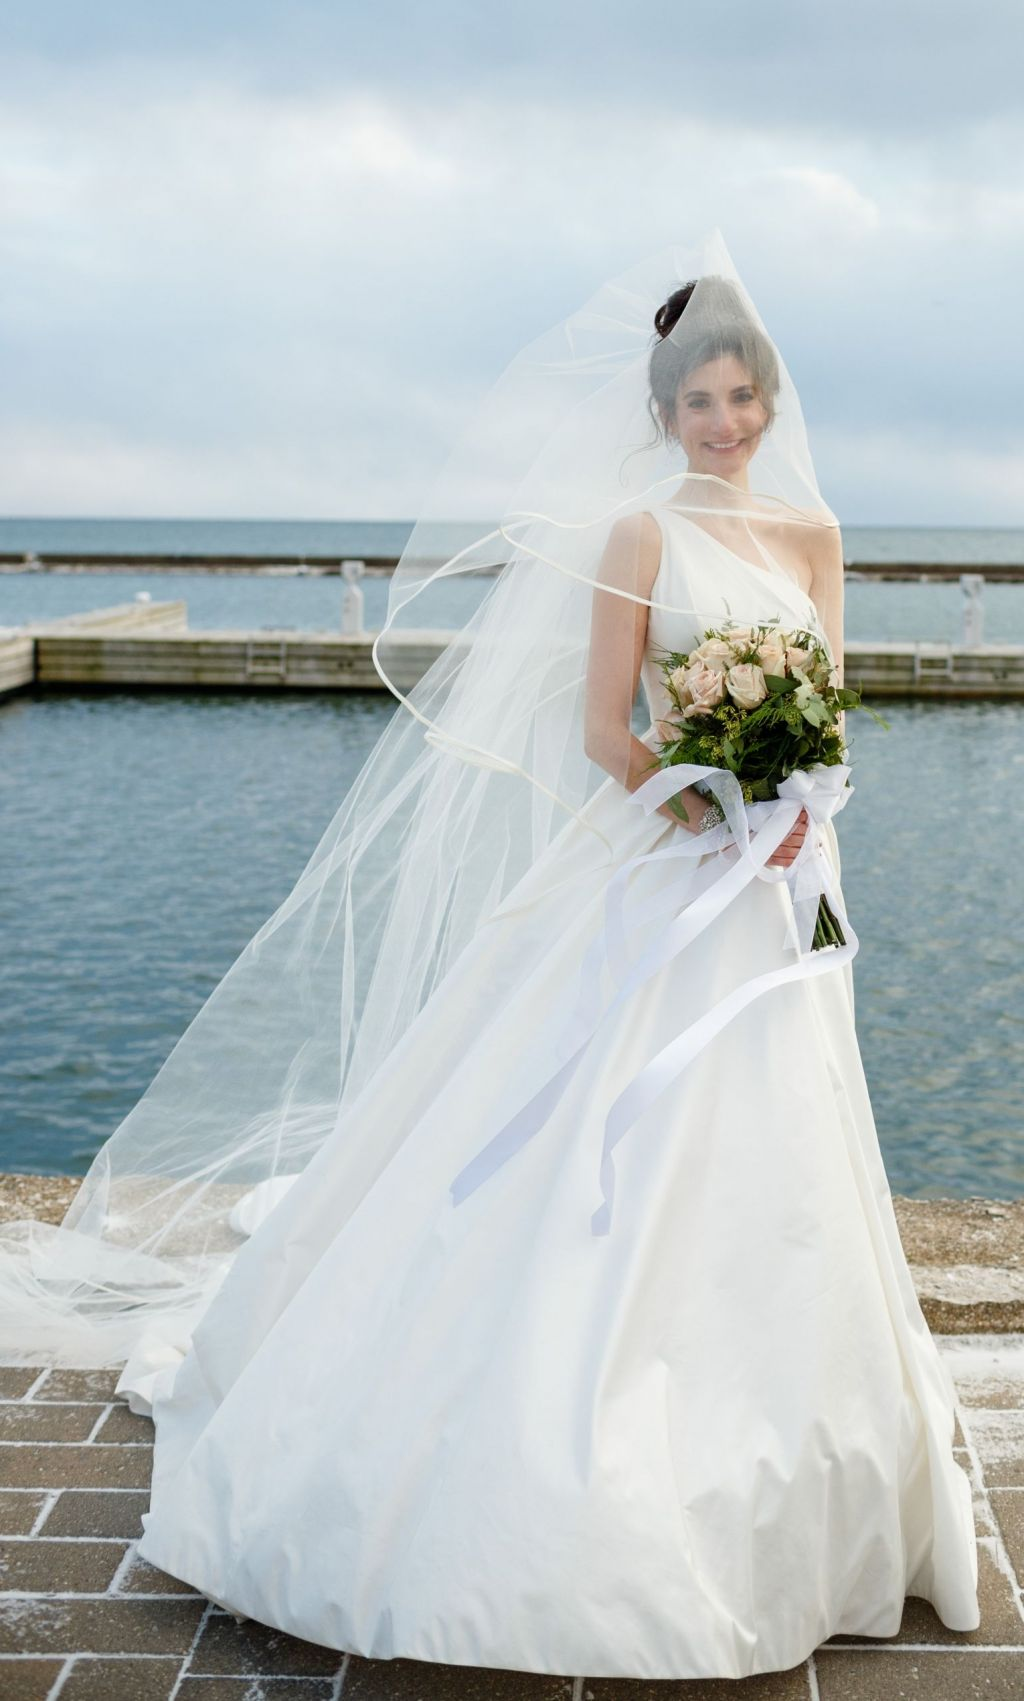 Ausgezeichnet Wedding Dress Dry Cleaning And Boxing Fotos ...